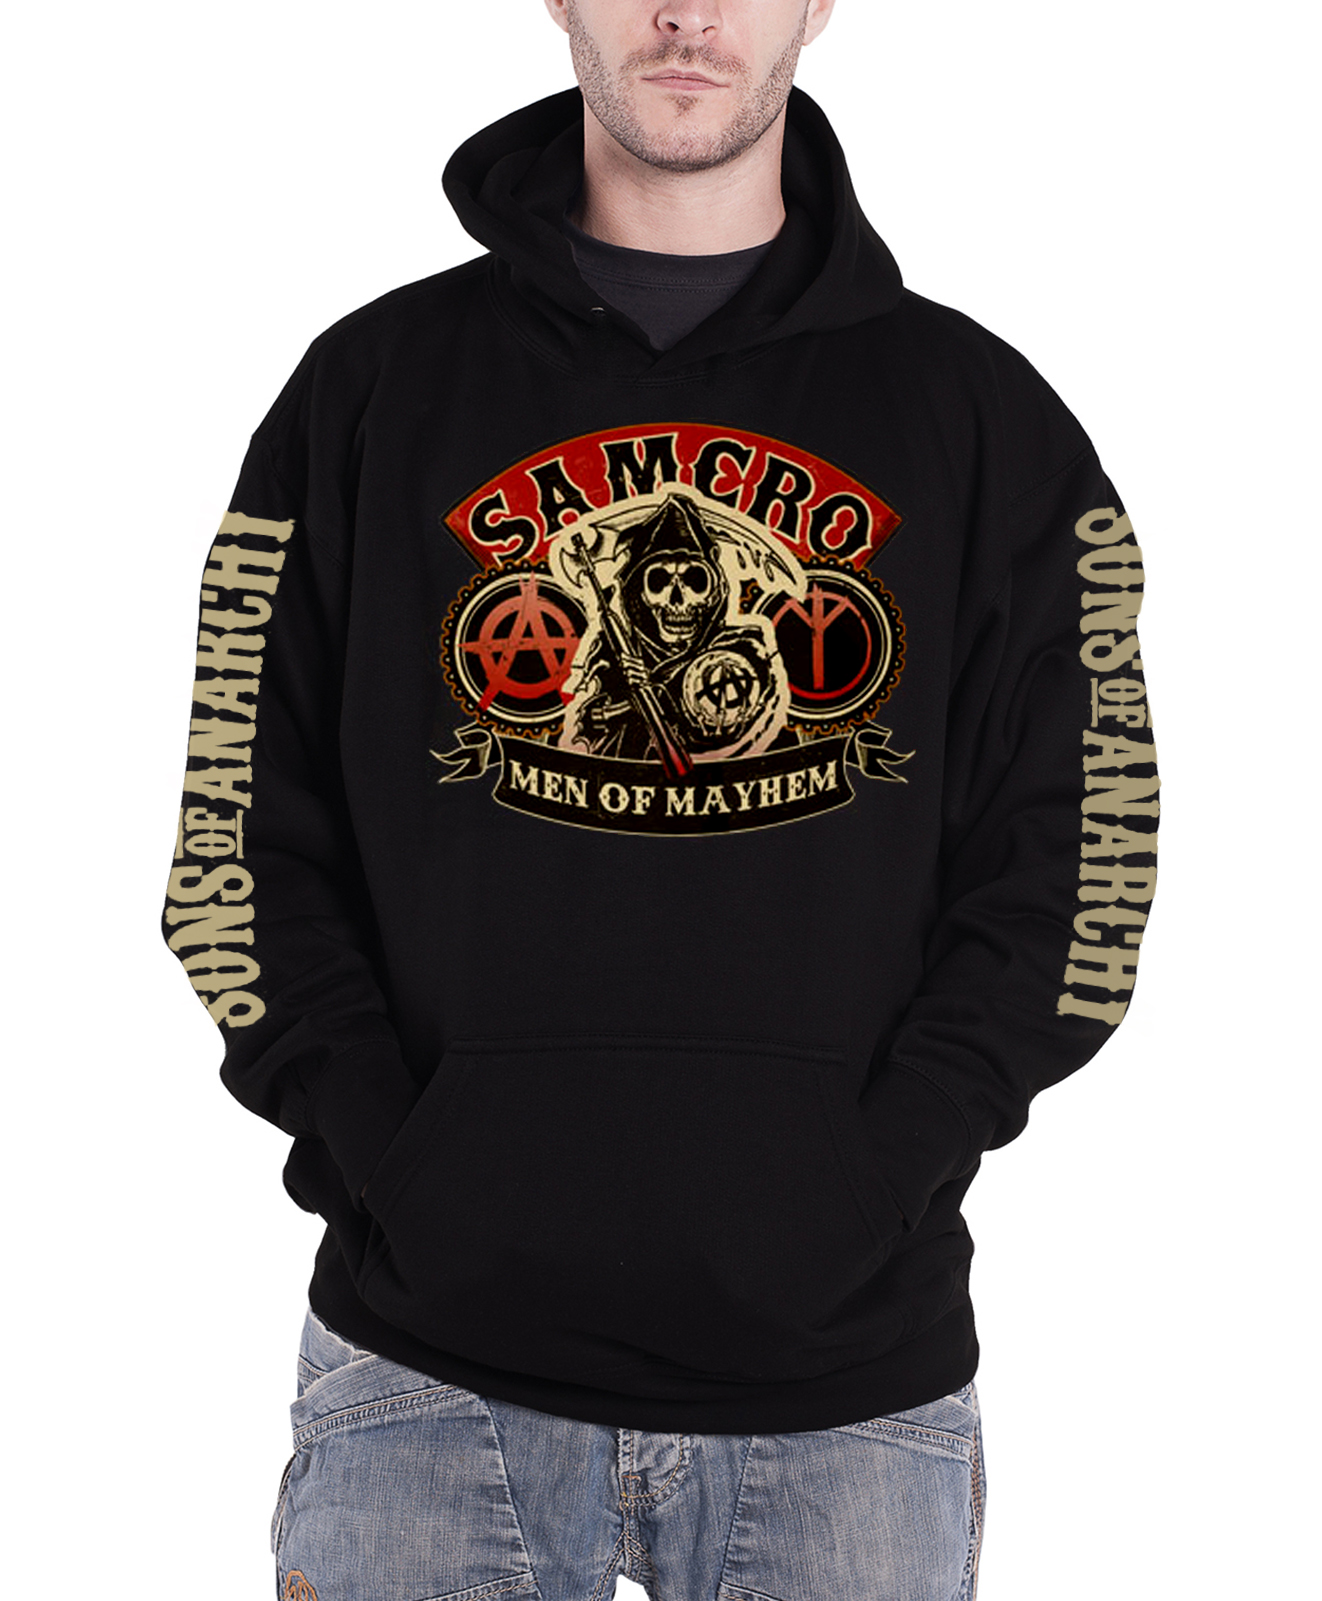 sons of anarchy hoodie reaper samrco logo soa crew. Black Bedroom Furniture Sets. Home Design Ideas